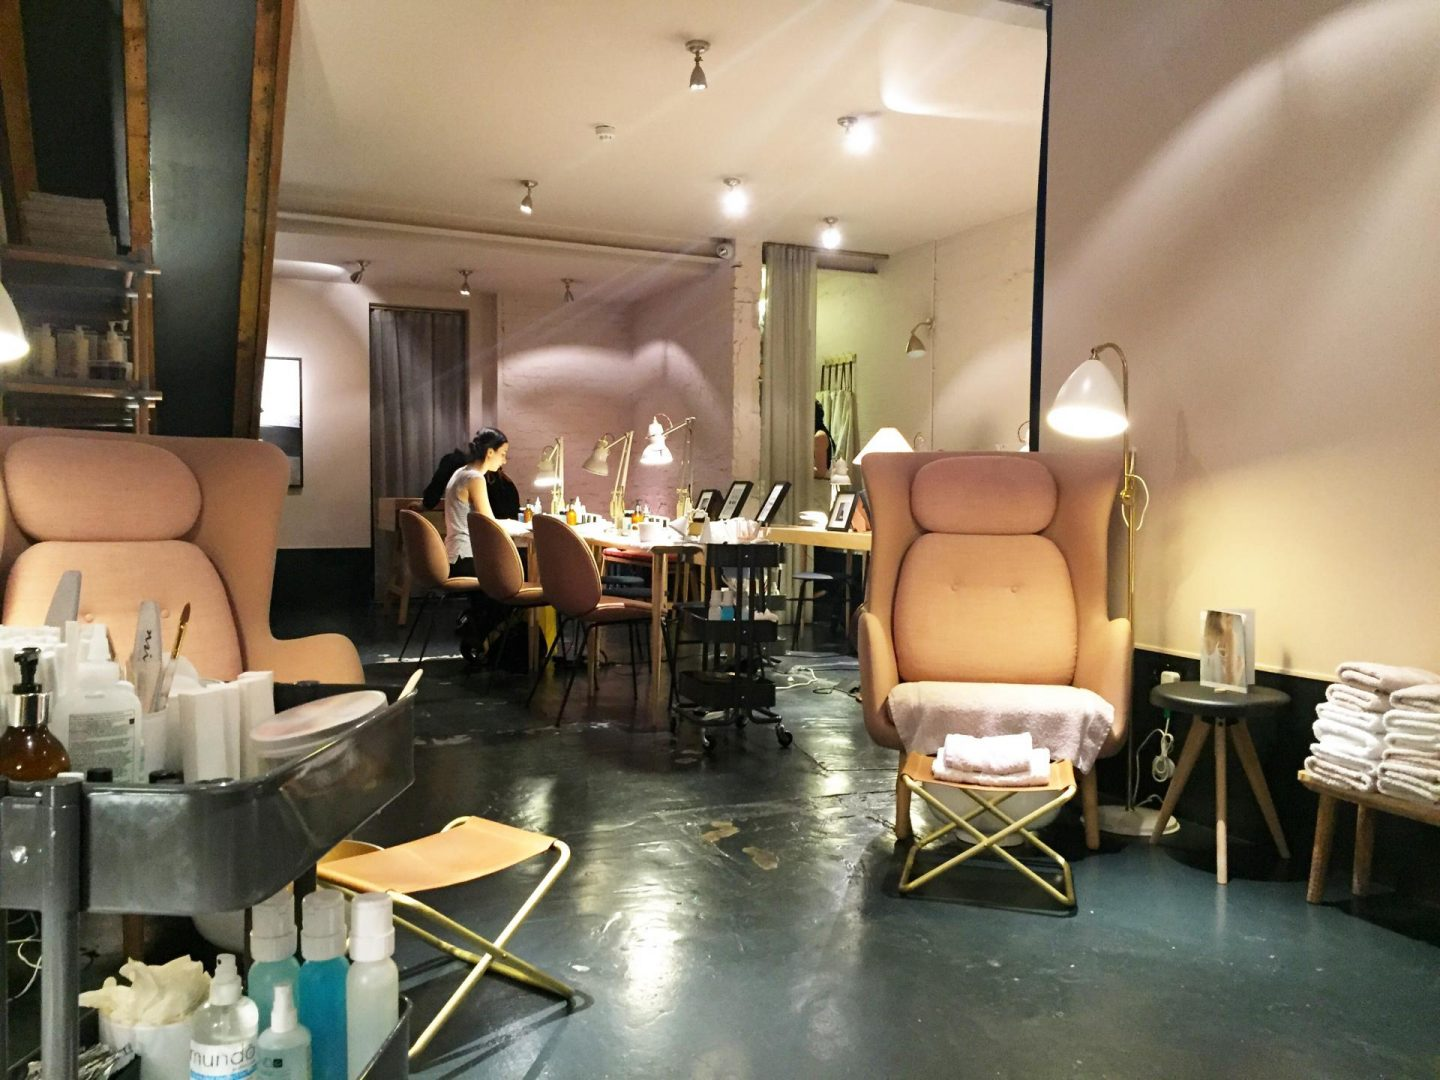 The perfect nail salon and blow dry bar in london dryby - Nail salons in london ...